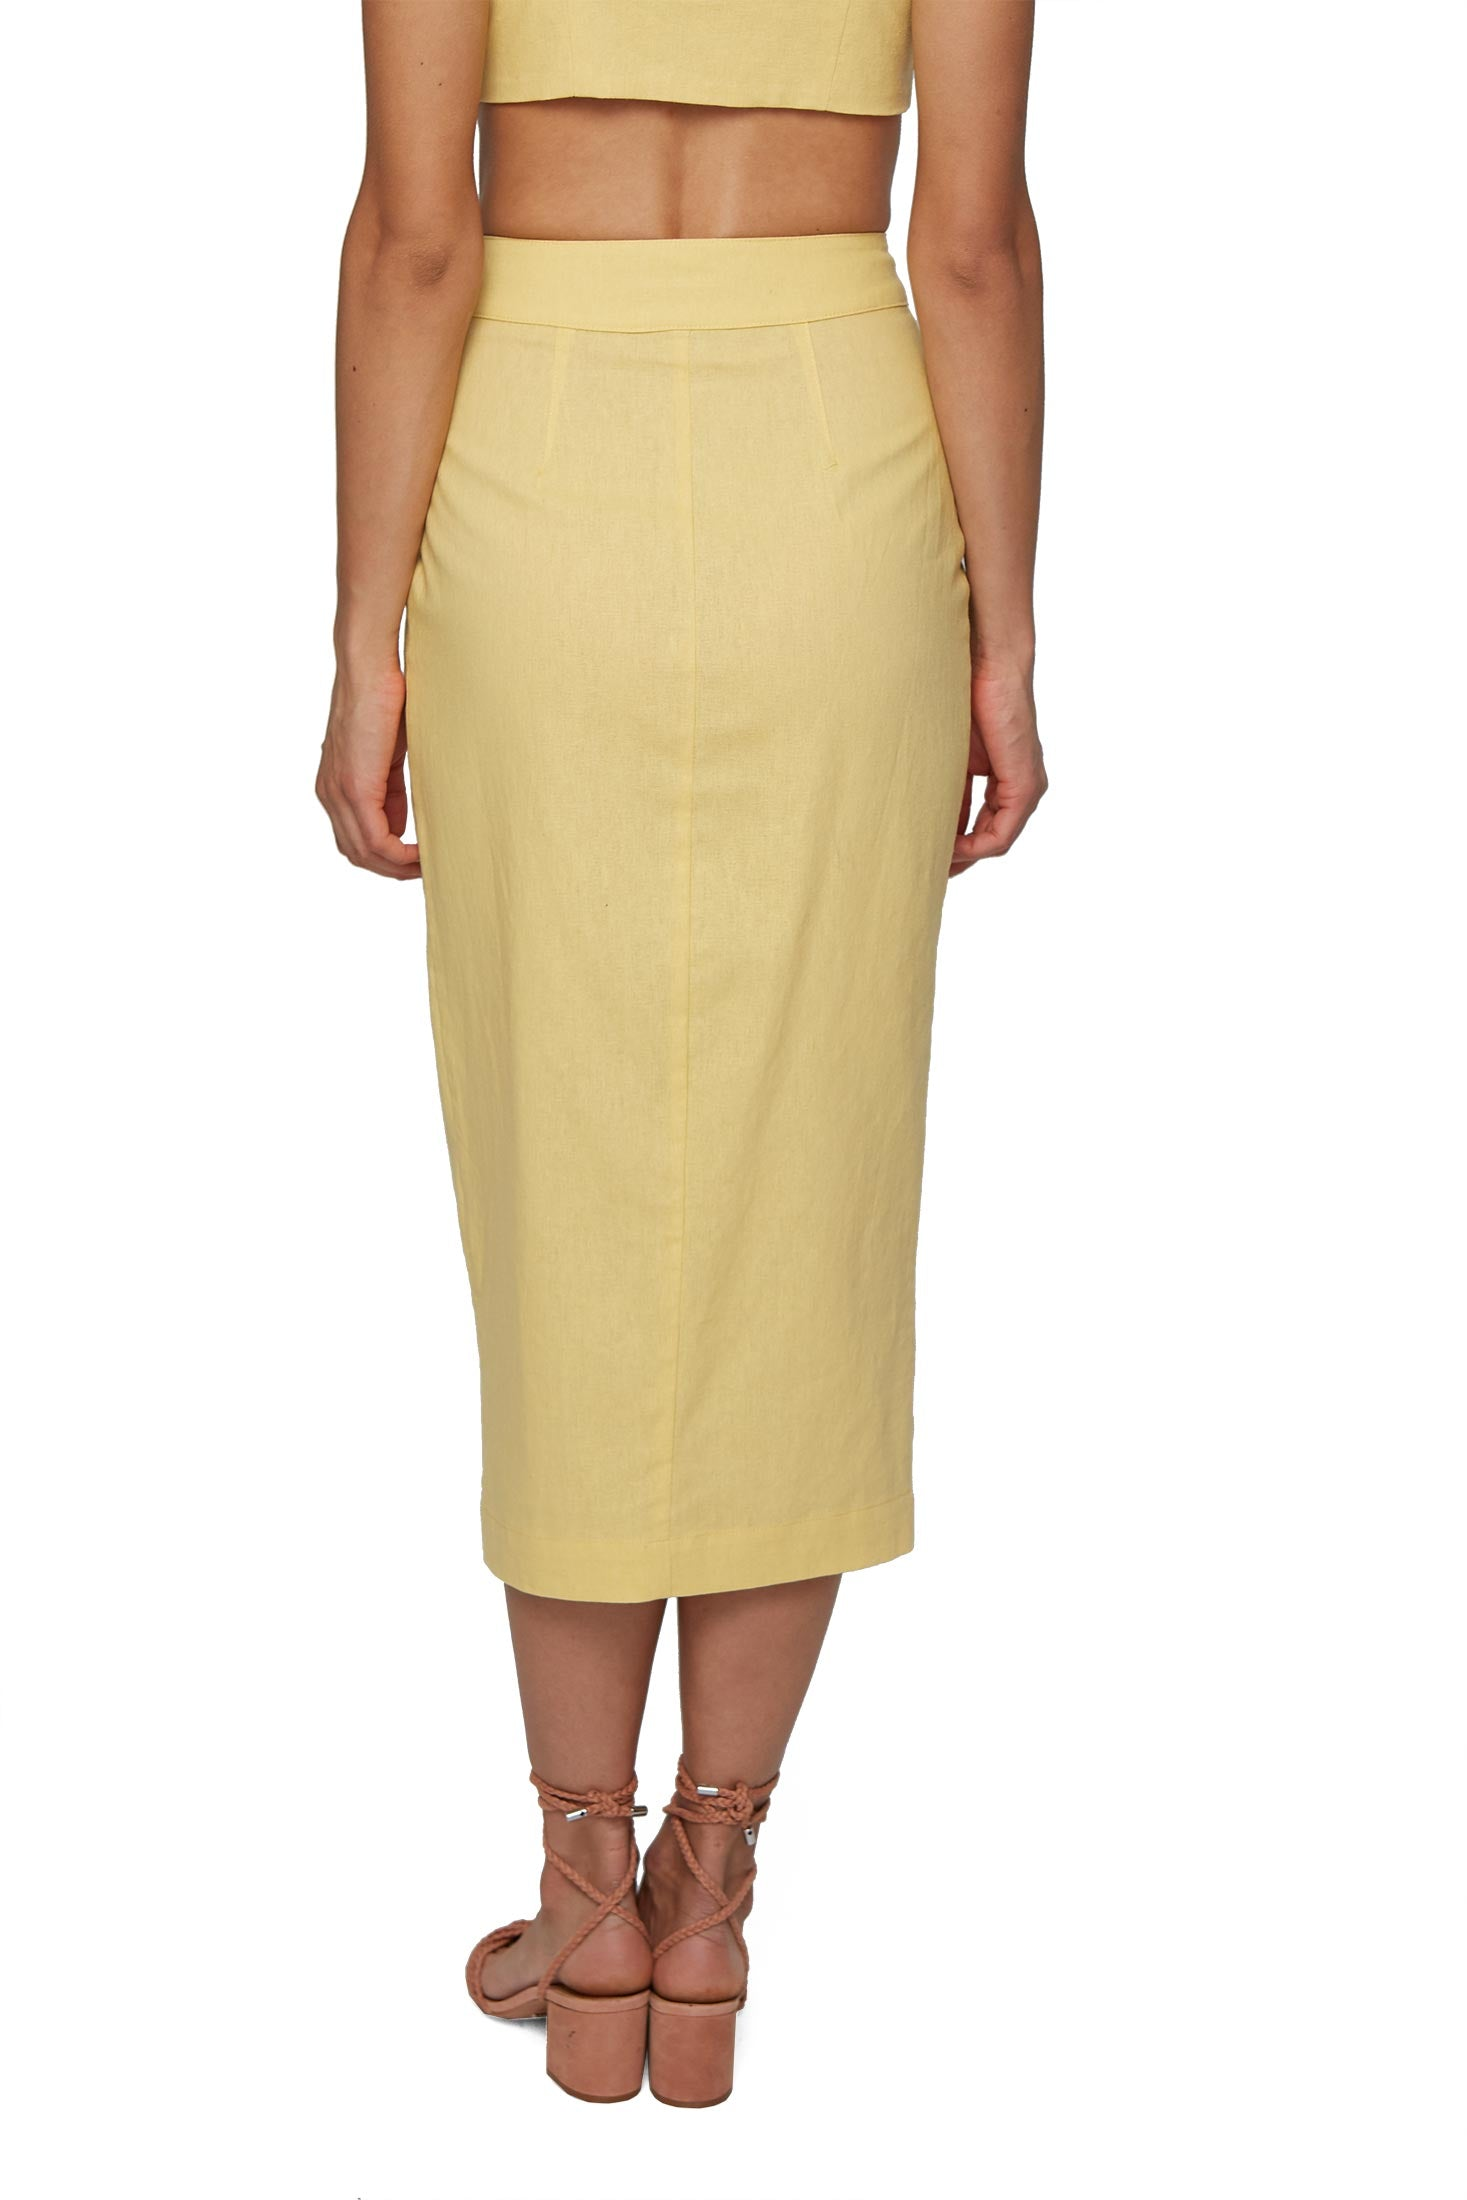 Becker Skirt - Yellow